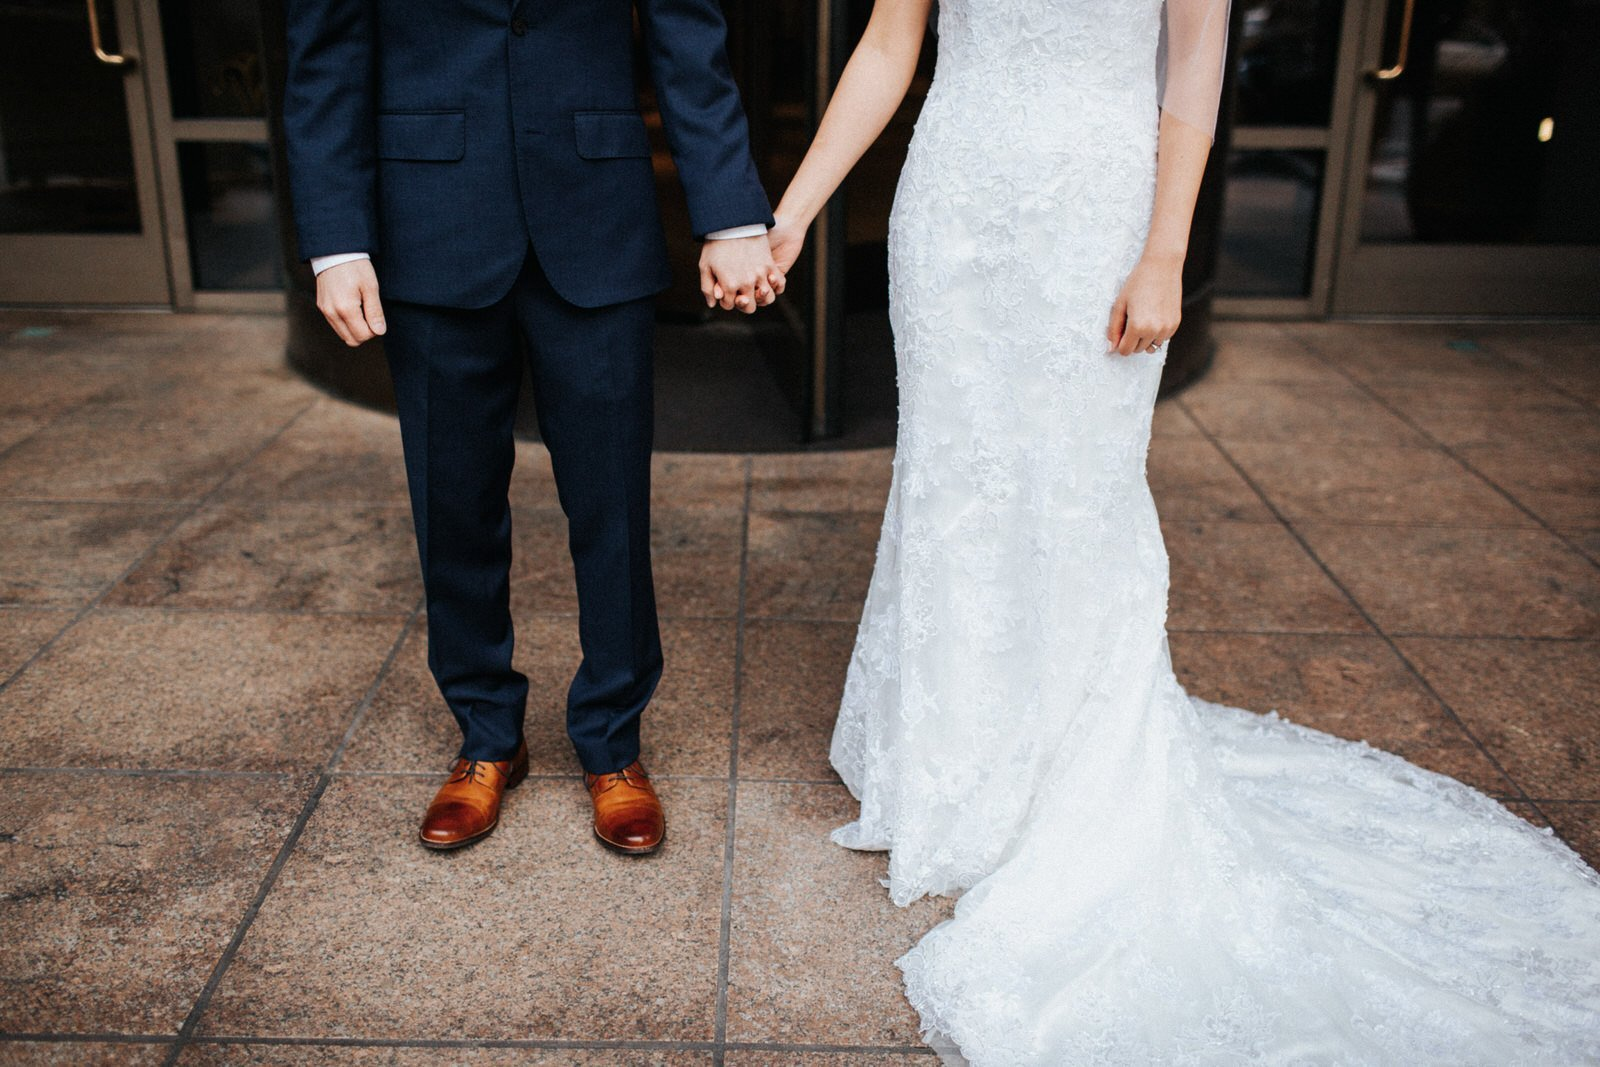 The couple poses in front of hotel 1000 in downtown seattle